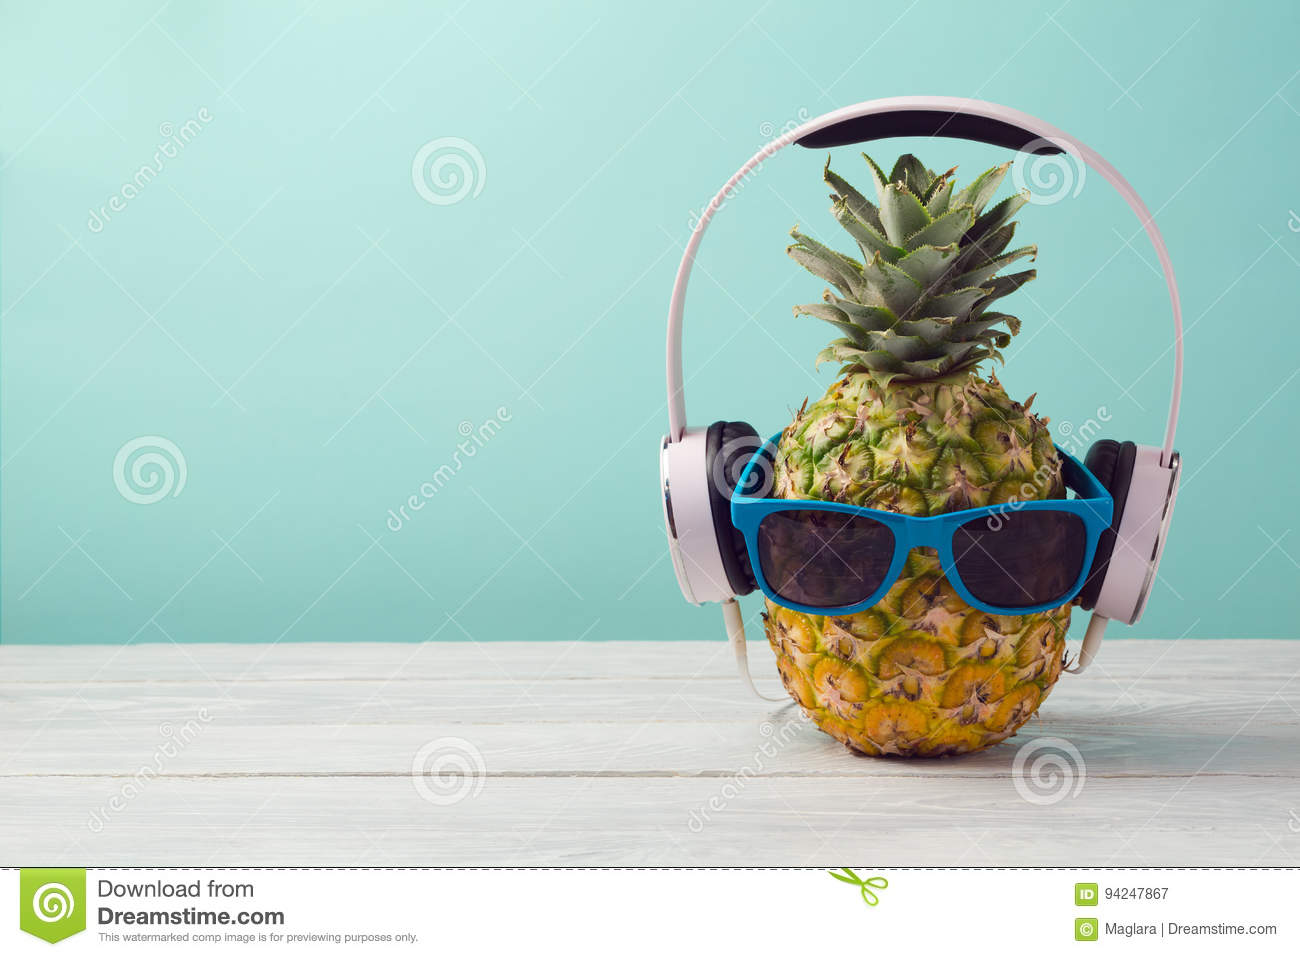 Pineapple with headphones and sunglasses on wooden table over mint background. Tropical summer vacation and beach party.